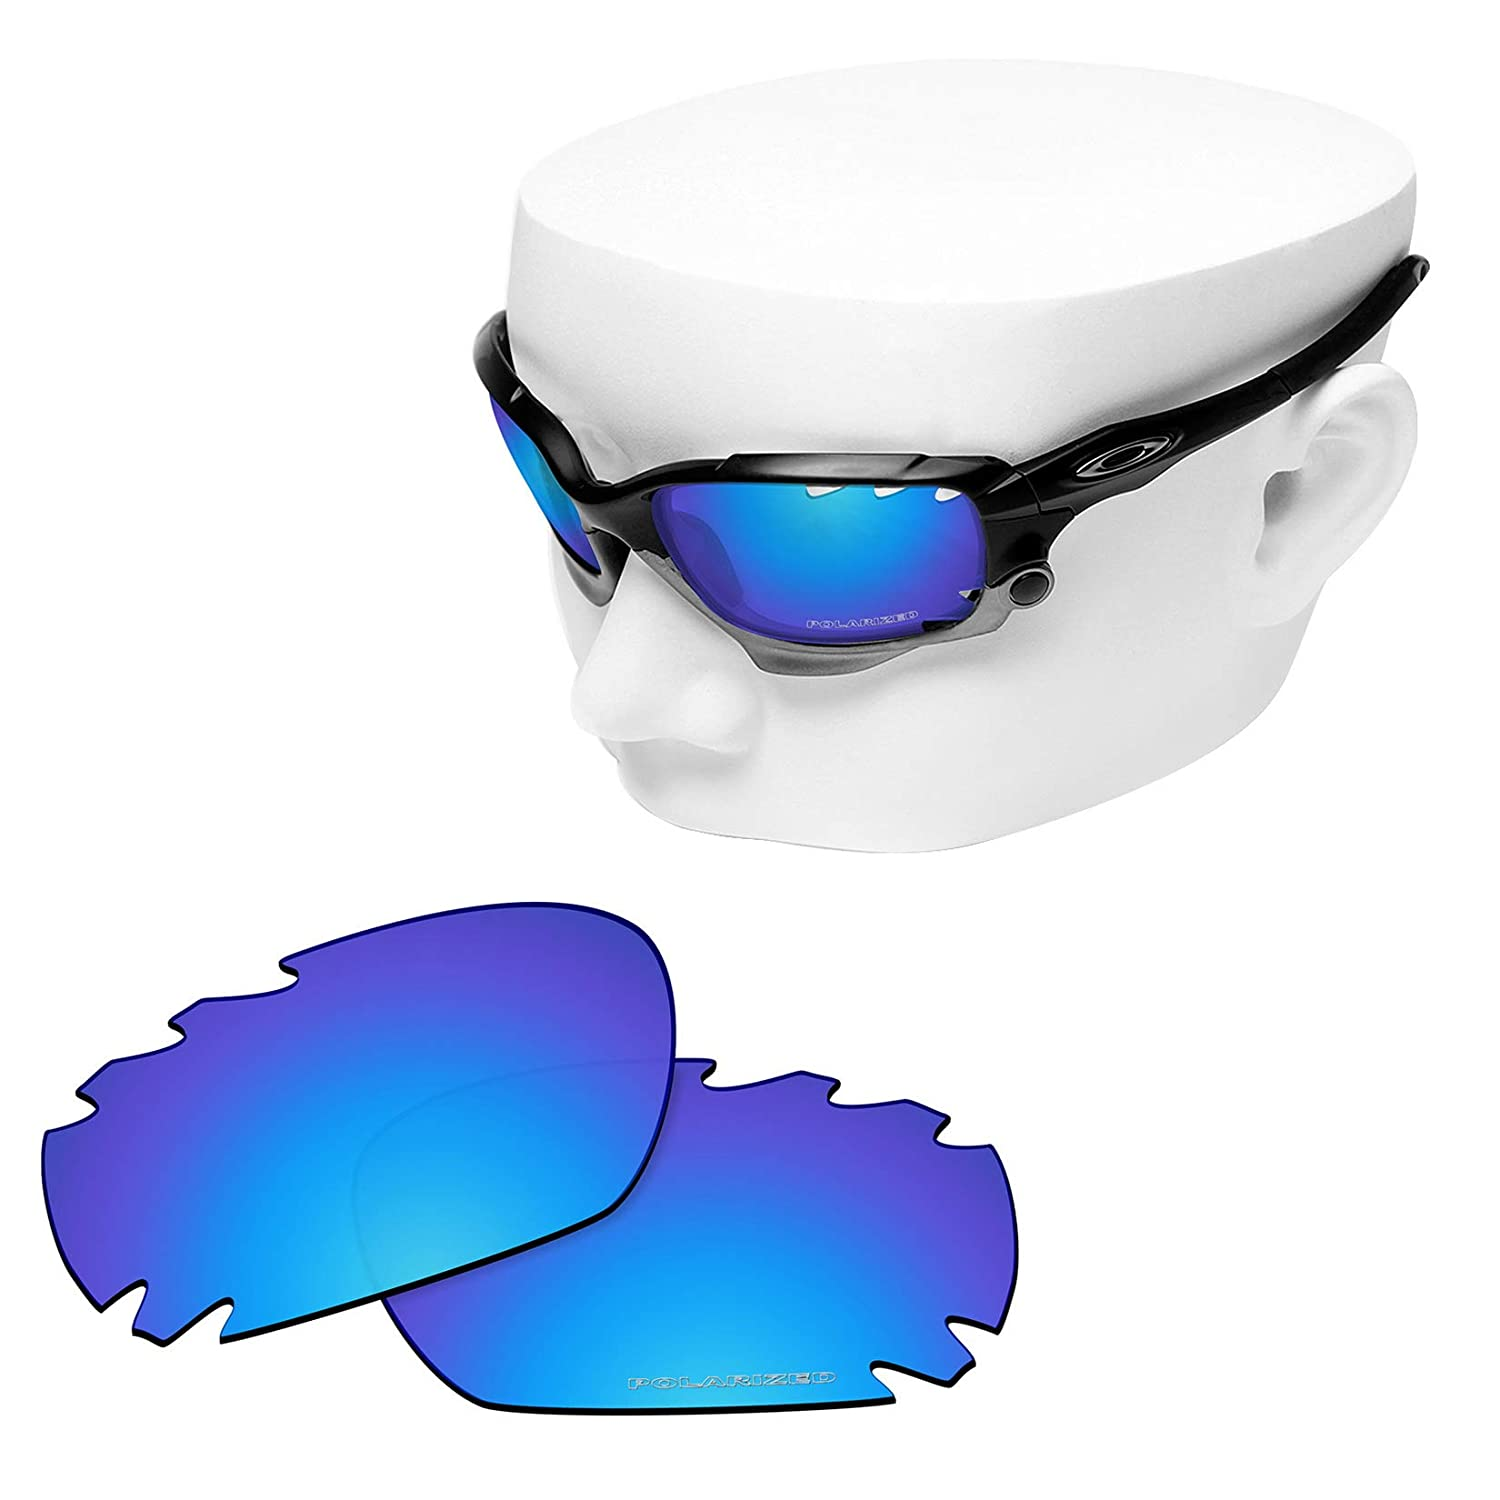 9e58c50b8e1 Amazon.com  OOWLIT 2 Pair Replacement Sunglass Lenses compatible with Oakley  Jawbone Vented POLARIZED  Clothing